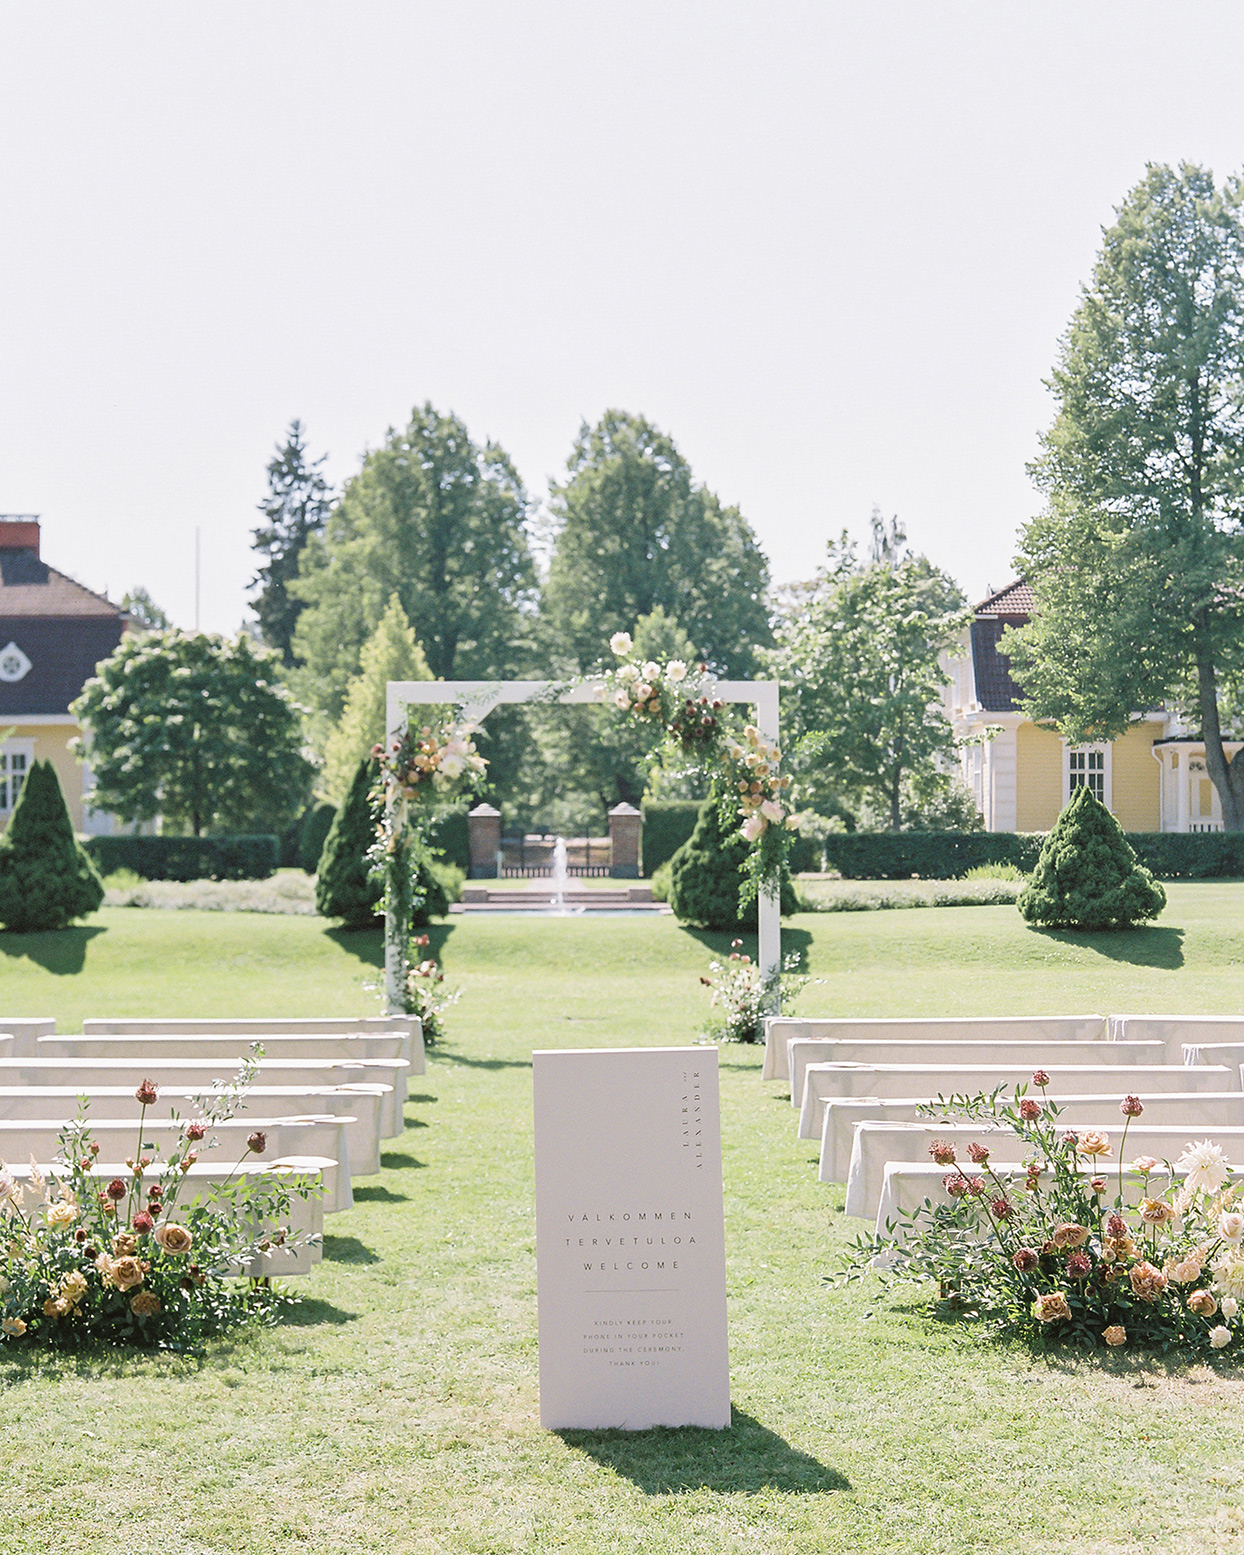 laura alexander wedding outdoor ceremony space